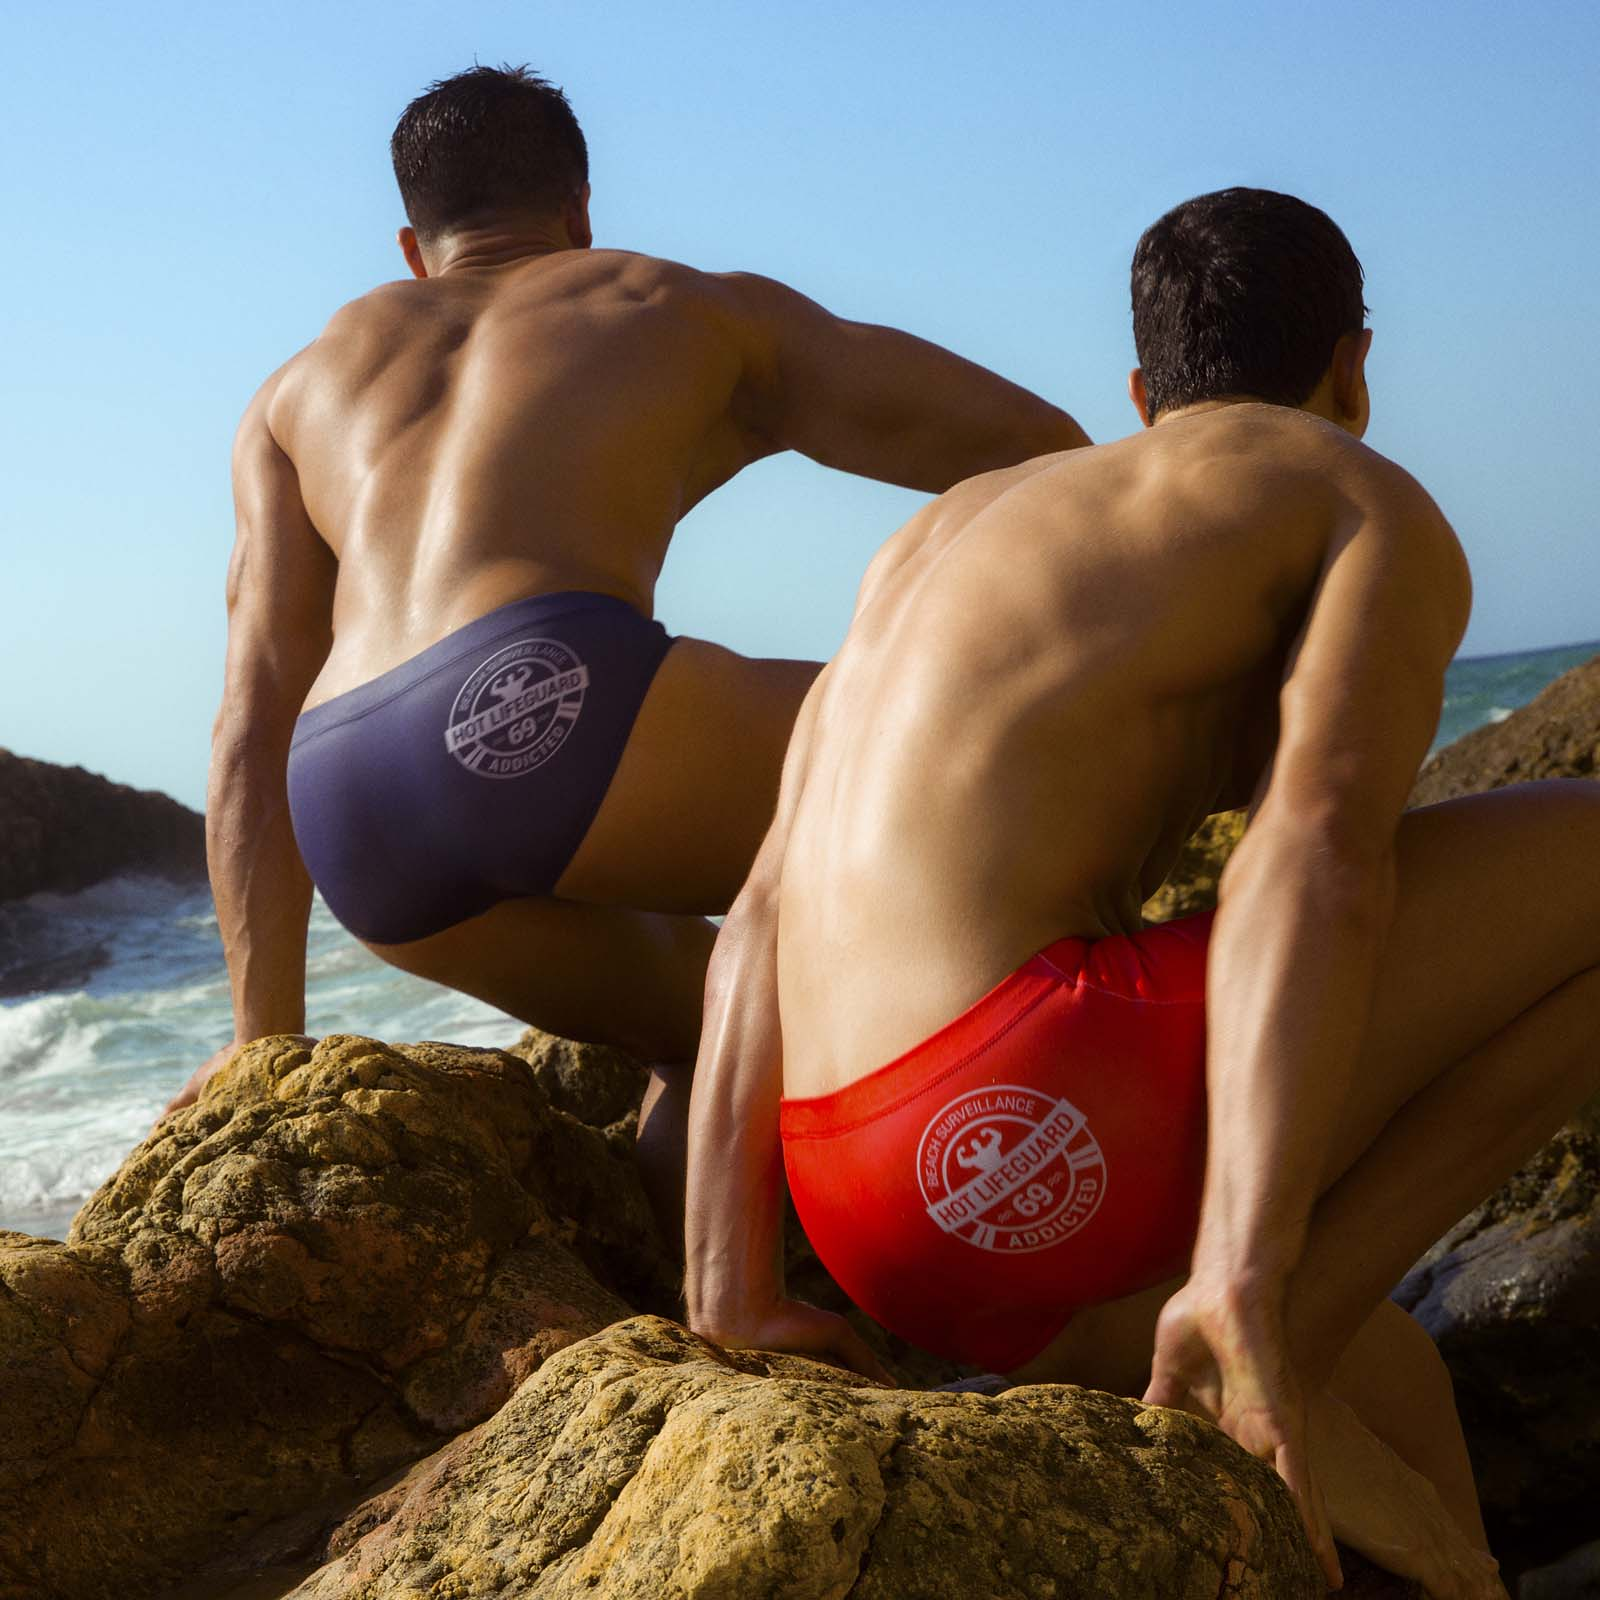 Swim Brief Addicted Lifeguard ADS158